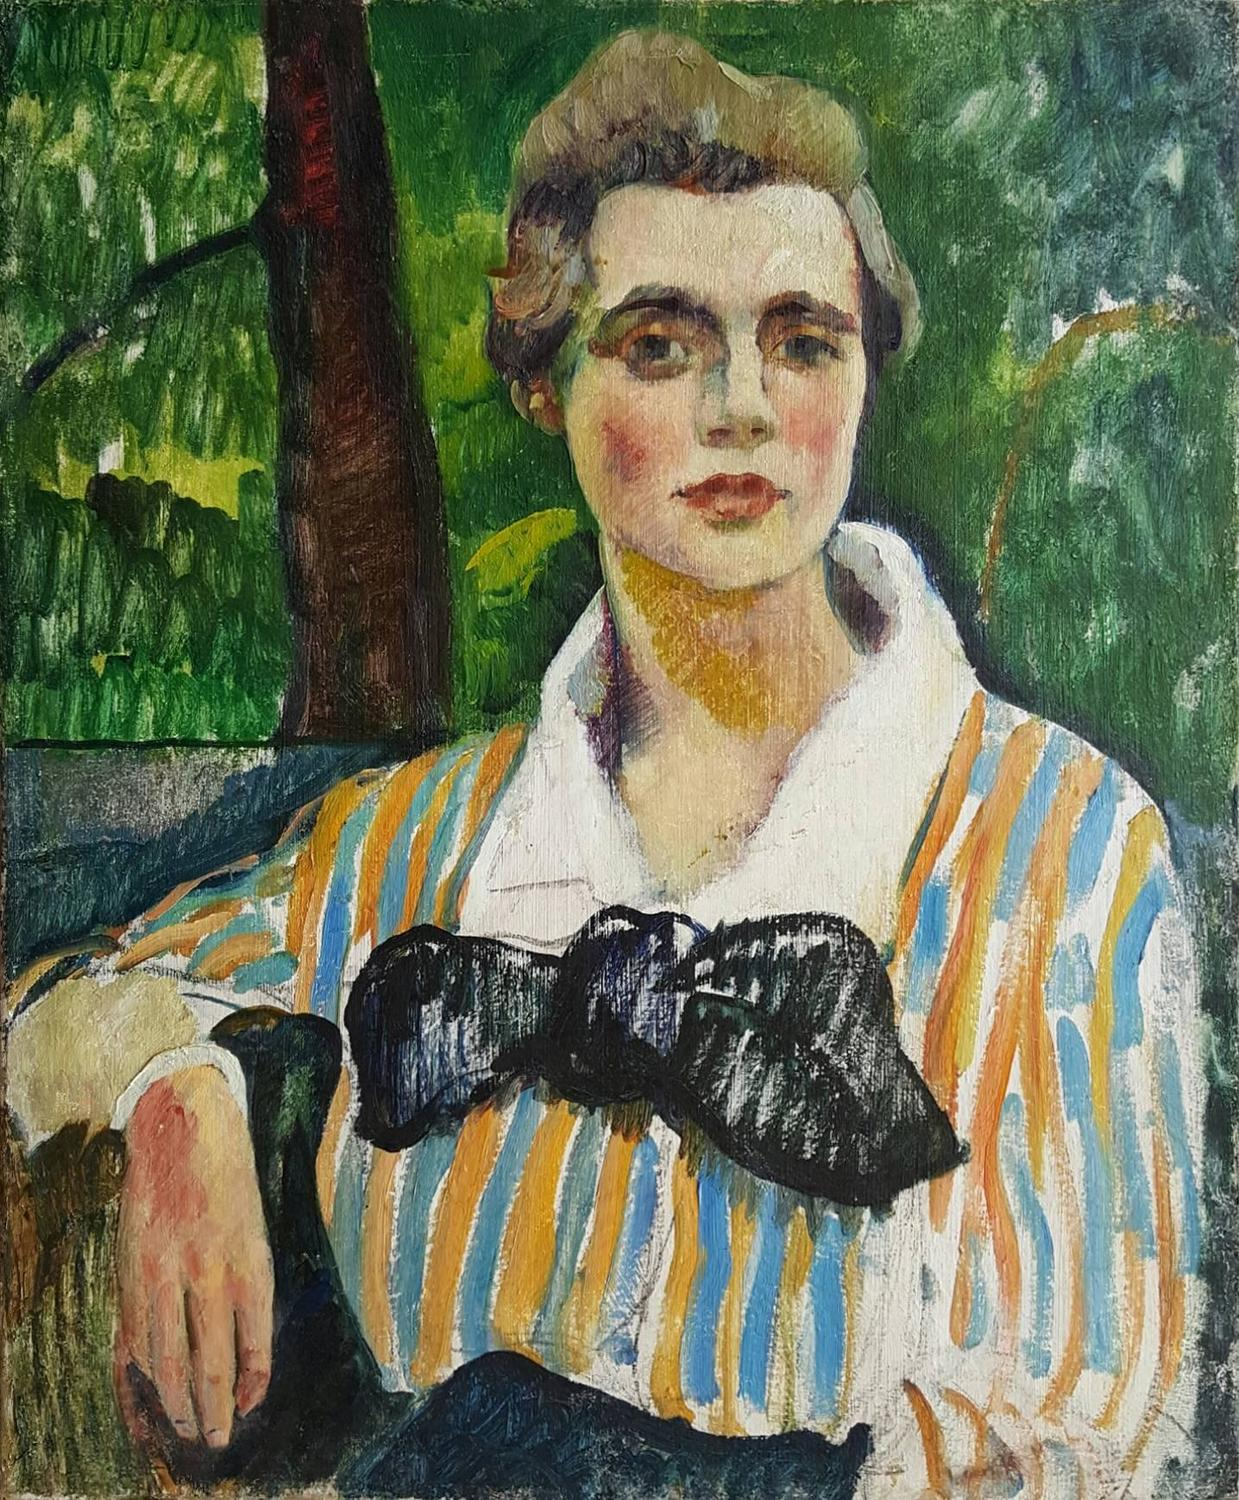 Leon Kroll Fauve Portait Of A Woman For Sale At 1stdibs